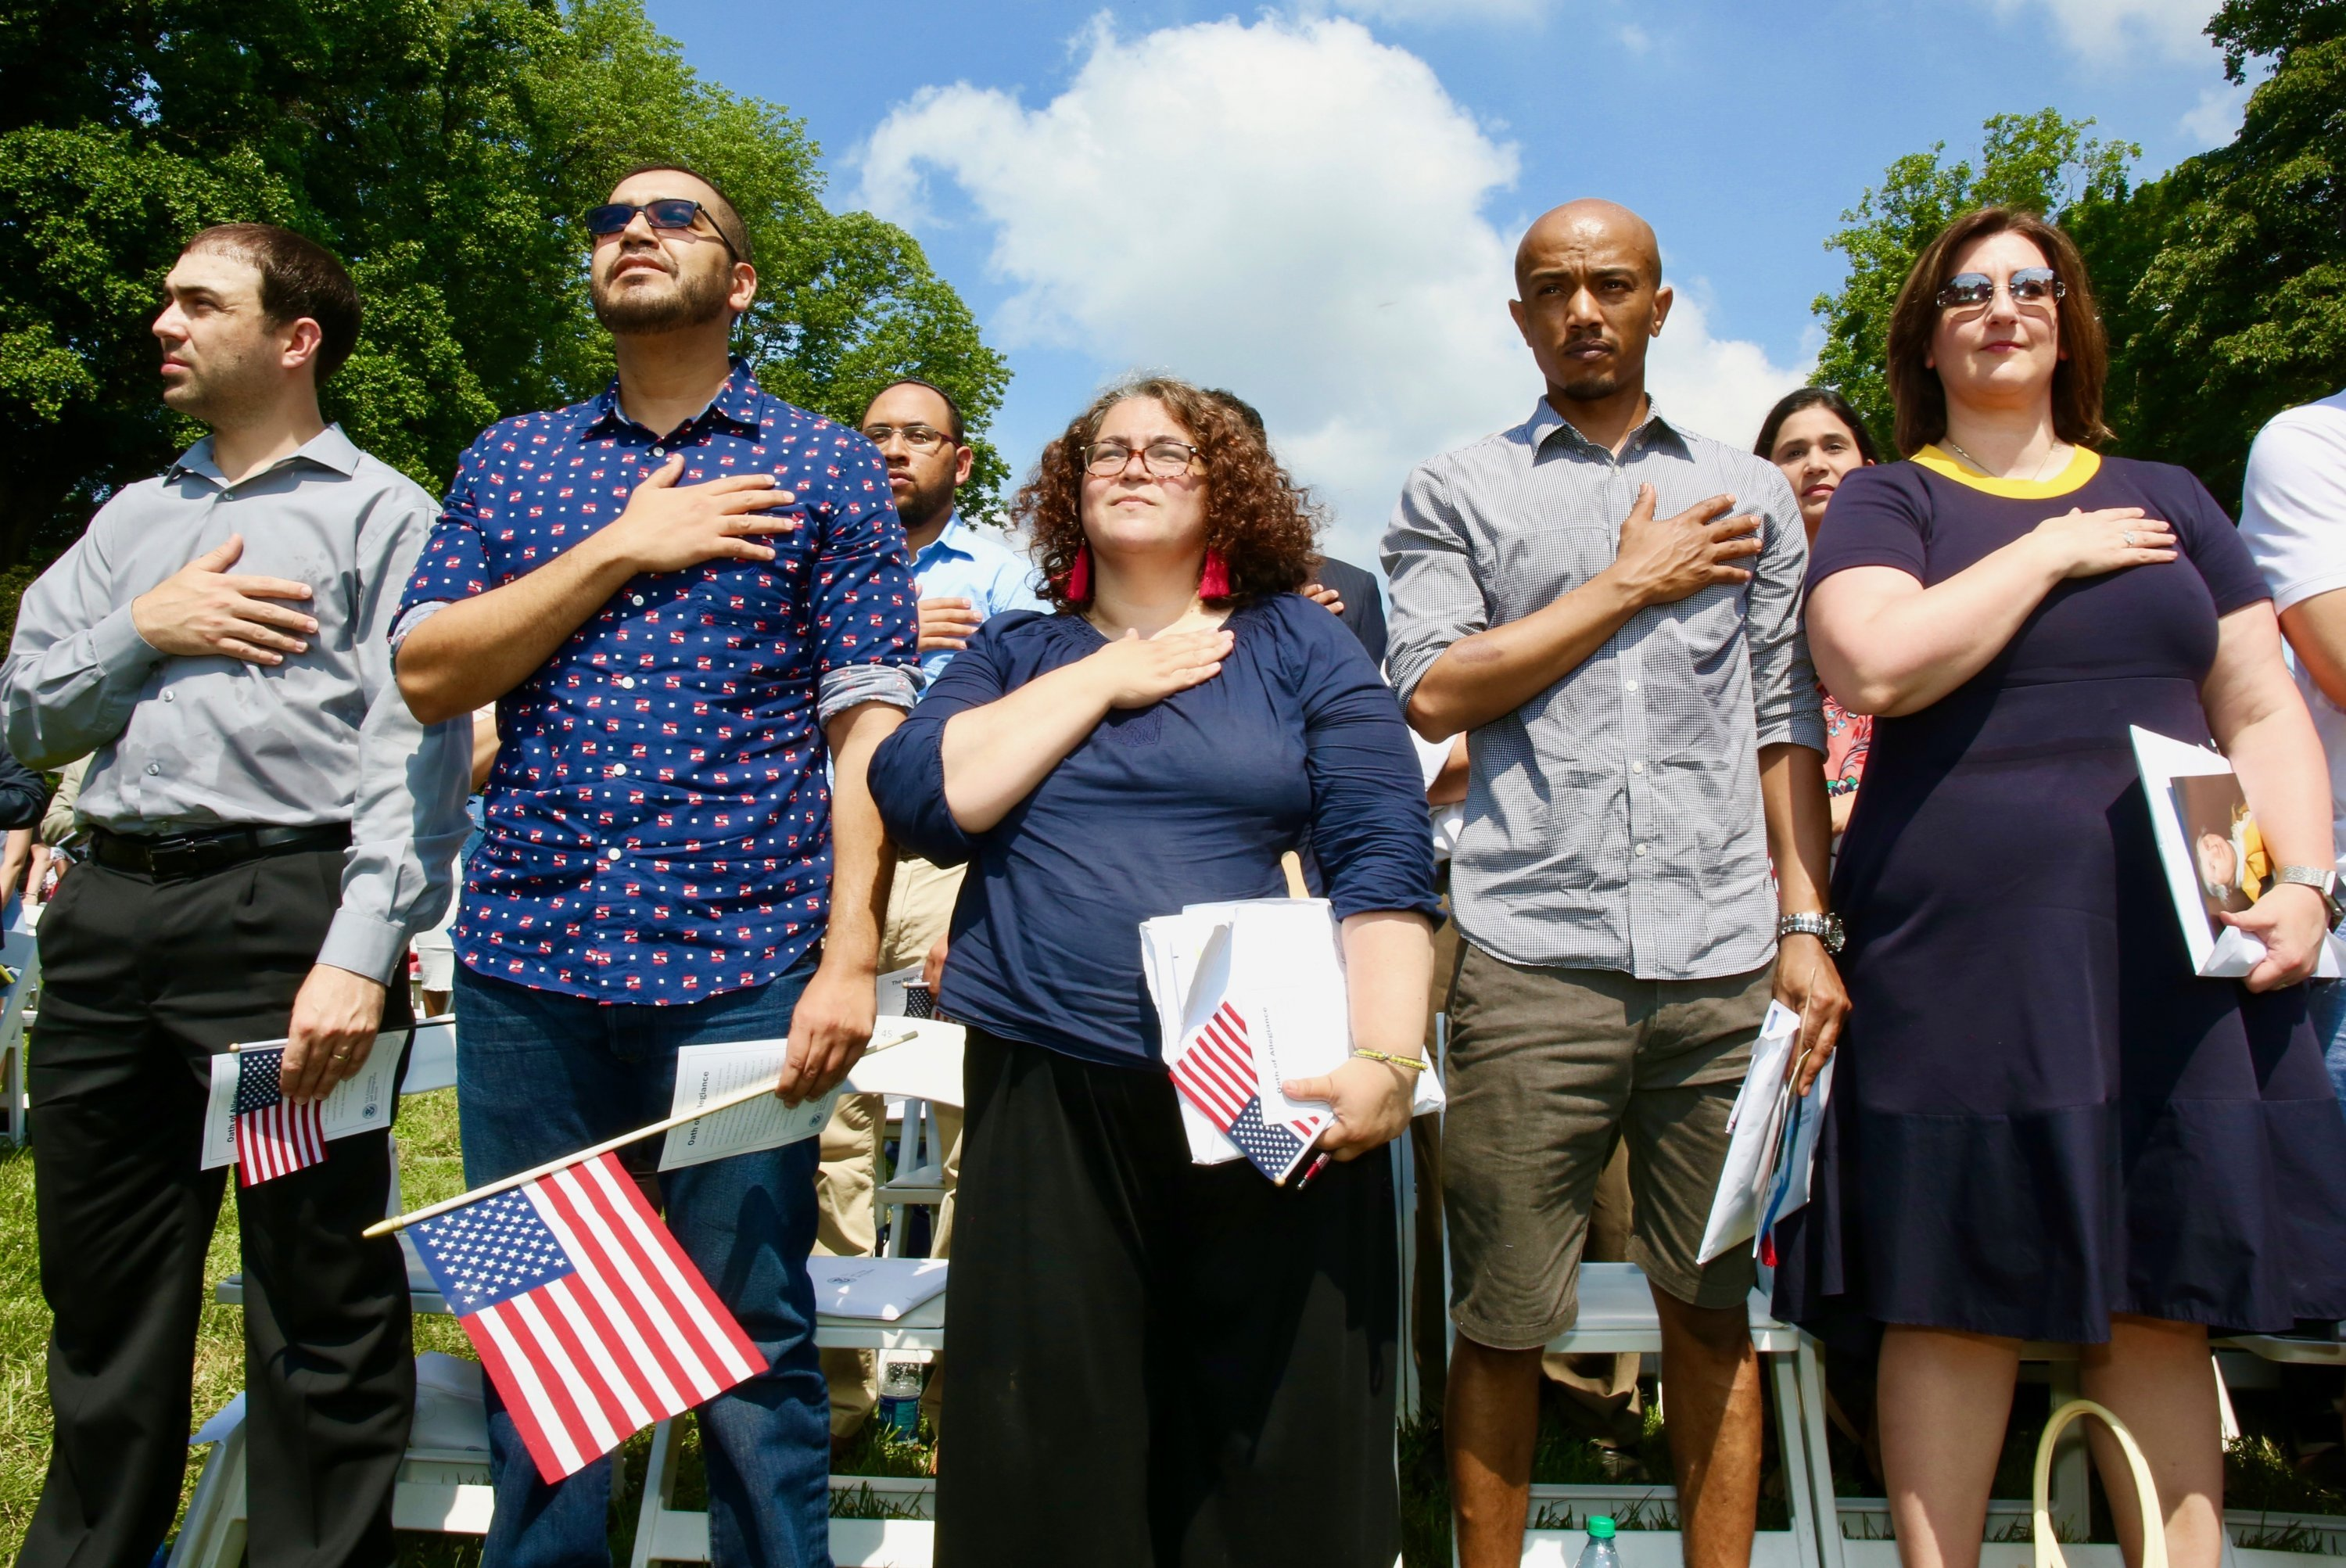 Photographs of Immigrants Becoming U.S. Citizens: Citizenship ceremony at Mt. Vernon.